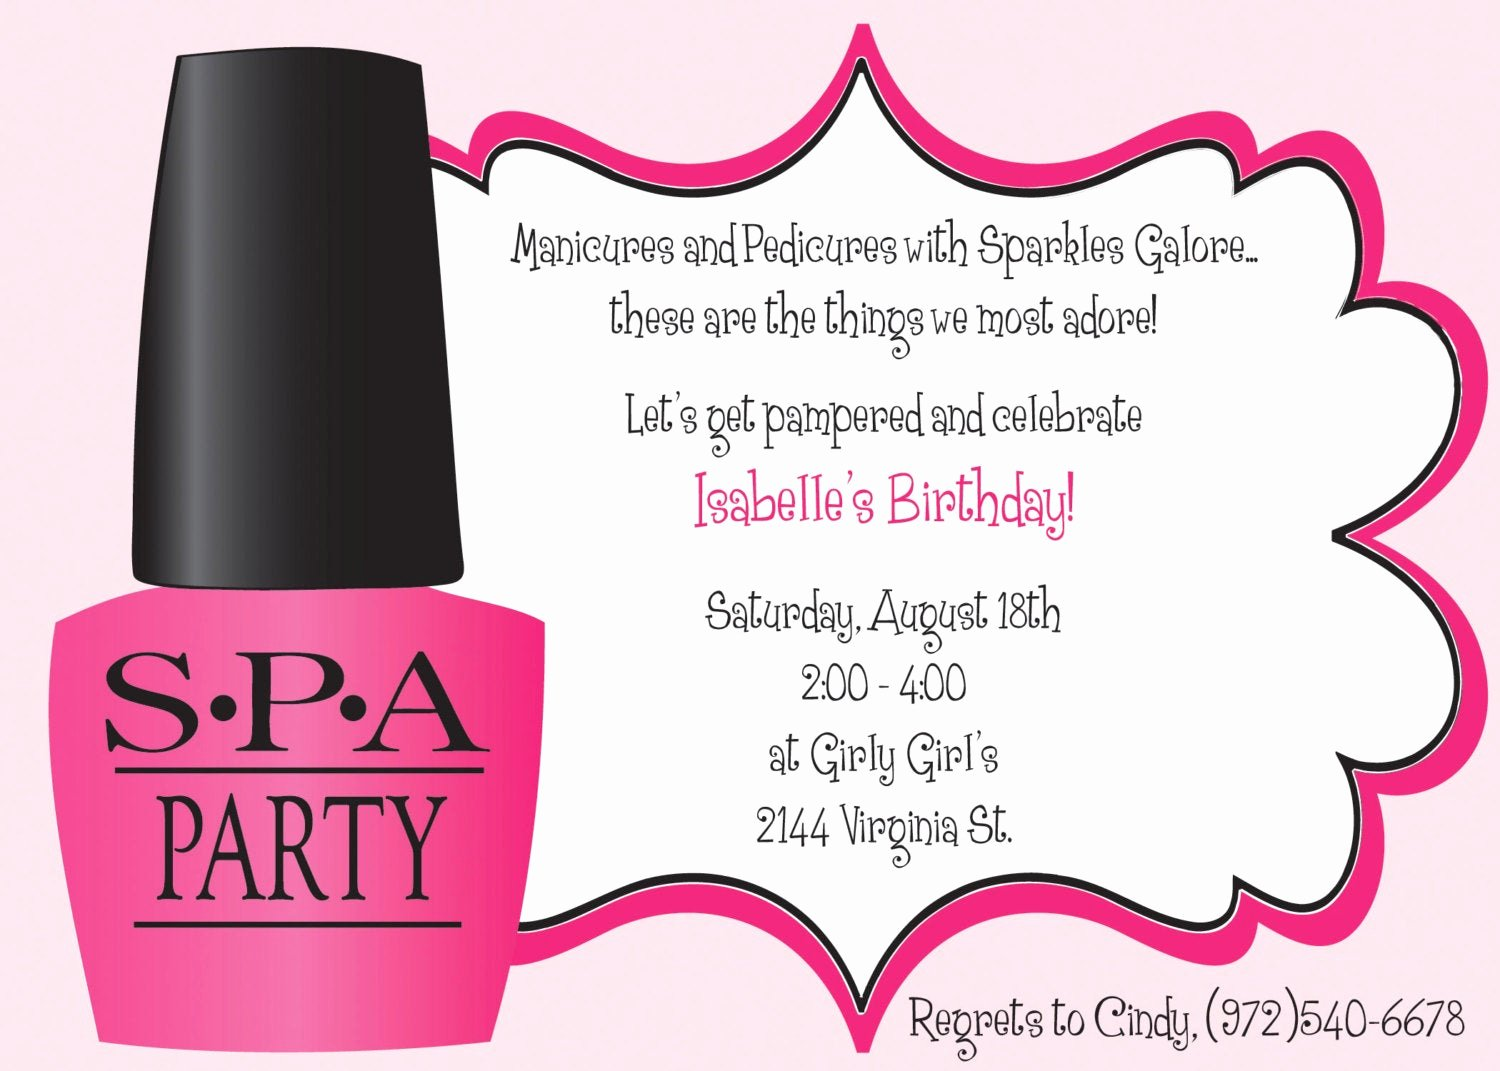 Spa Birthday Party Invitations Luxury Ooh La La Spa Party Girls Birthday Invitation Includes